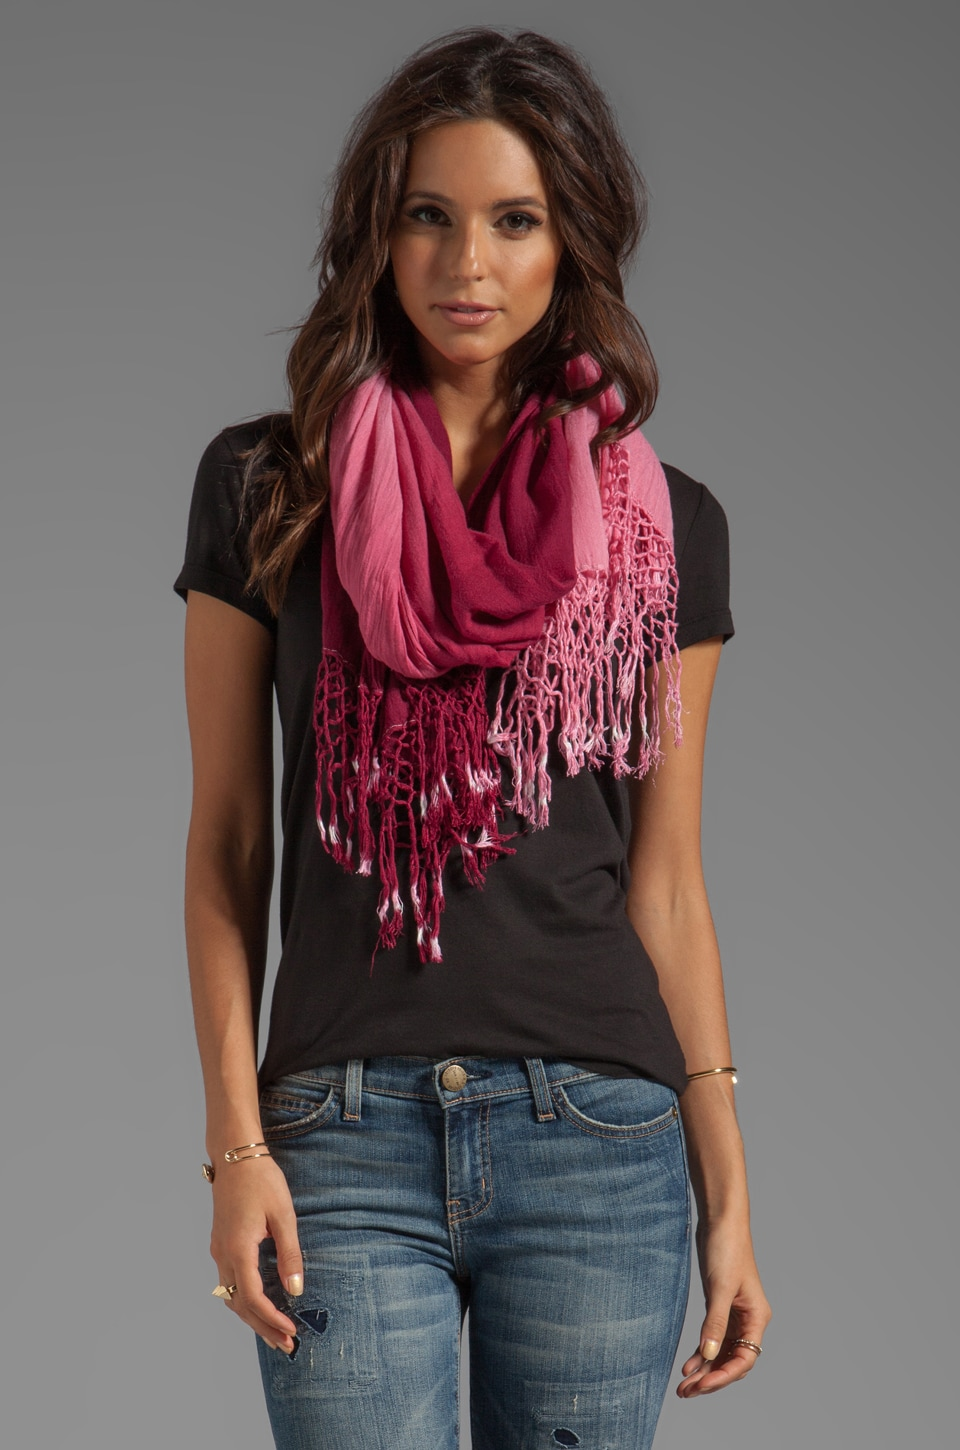 Gypsy 05 Foundation Ombre Scarf in Vino